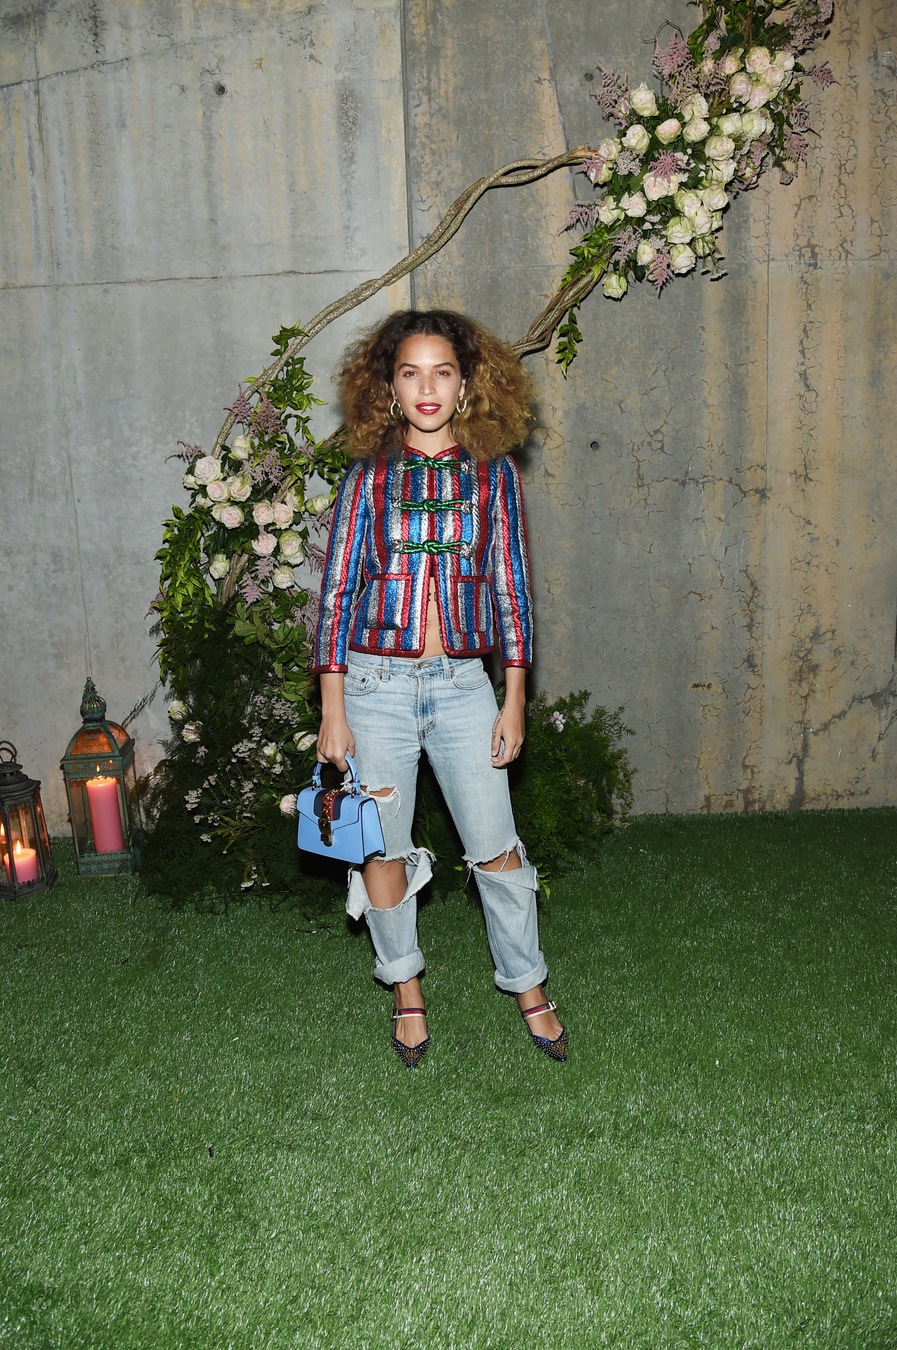 NEW YORK, NY - MAY 02: Cleo Wade attends the Gucci Bloom Fragrance Launch at MoMA PS.1 on May 2, 2017 in New York City. (Photo by Jamie McCarthy/Getty Images for Gucci)